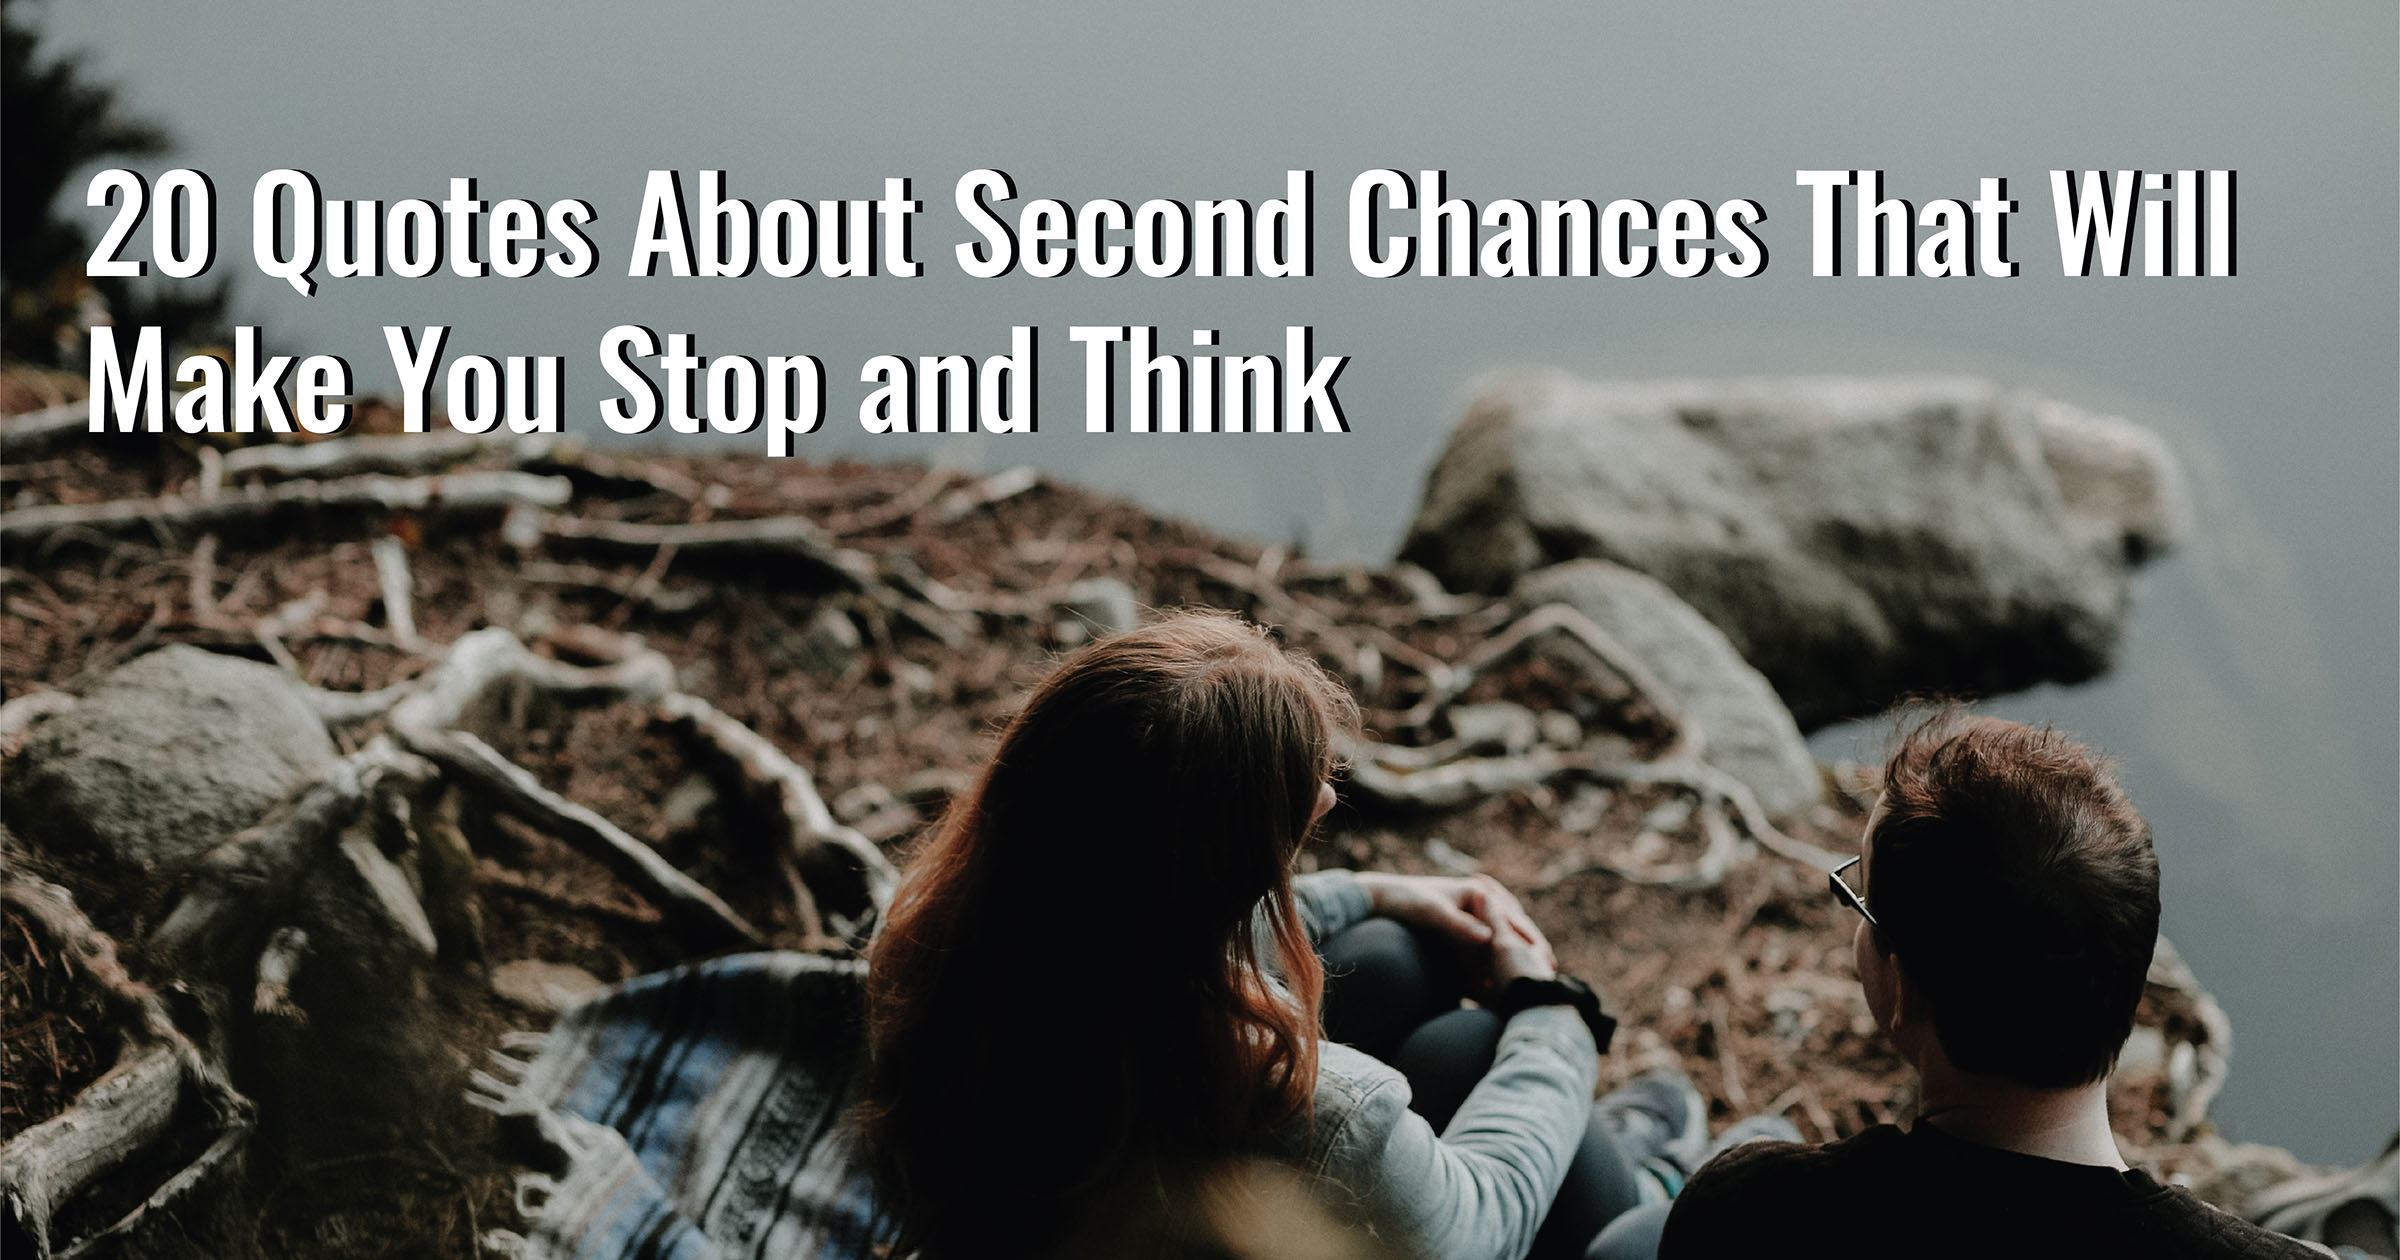 quotes about second chances that will make you stop and think